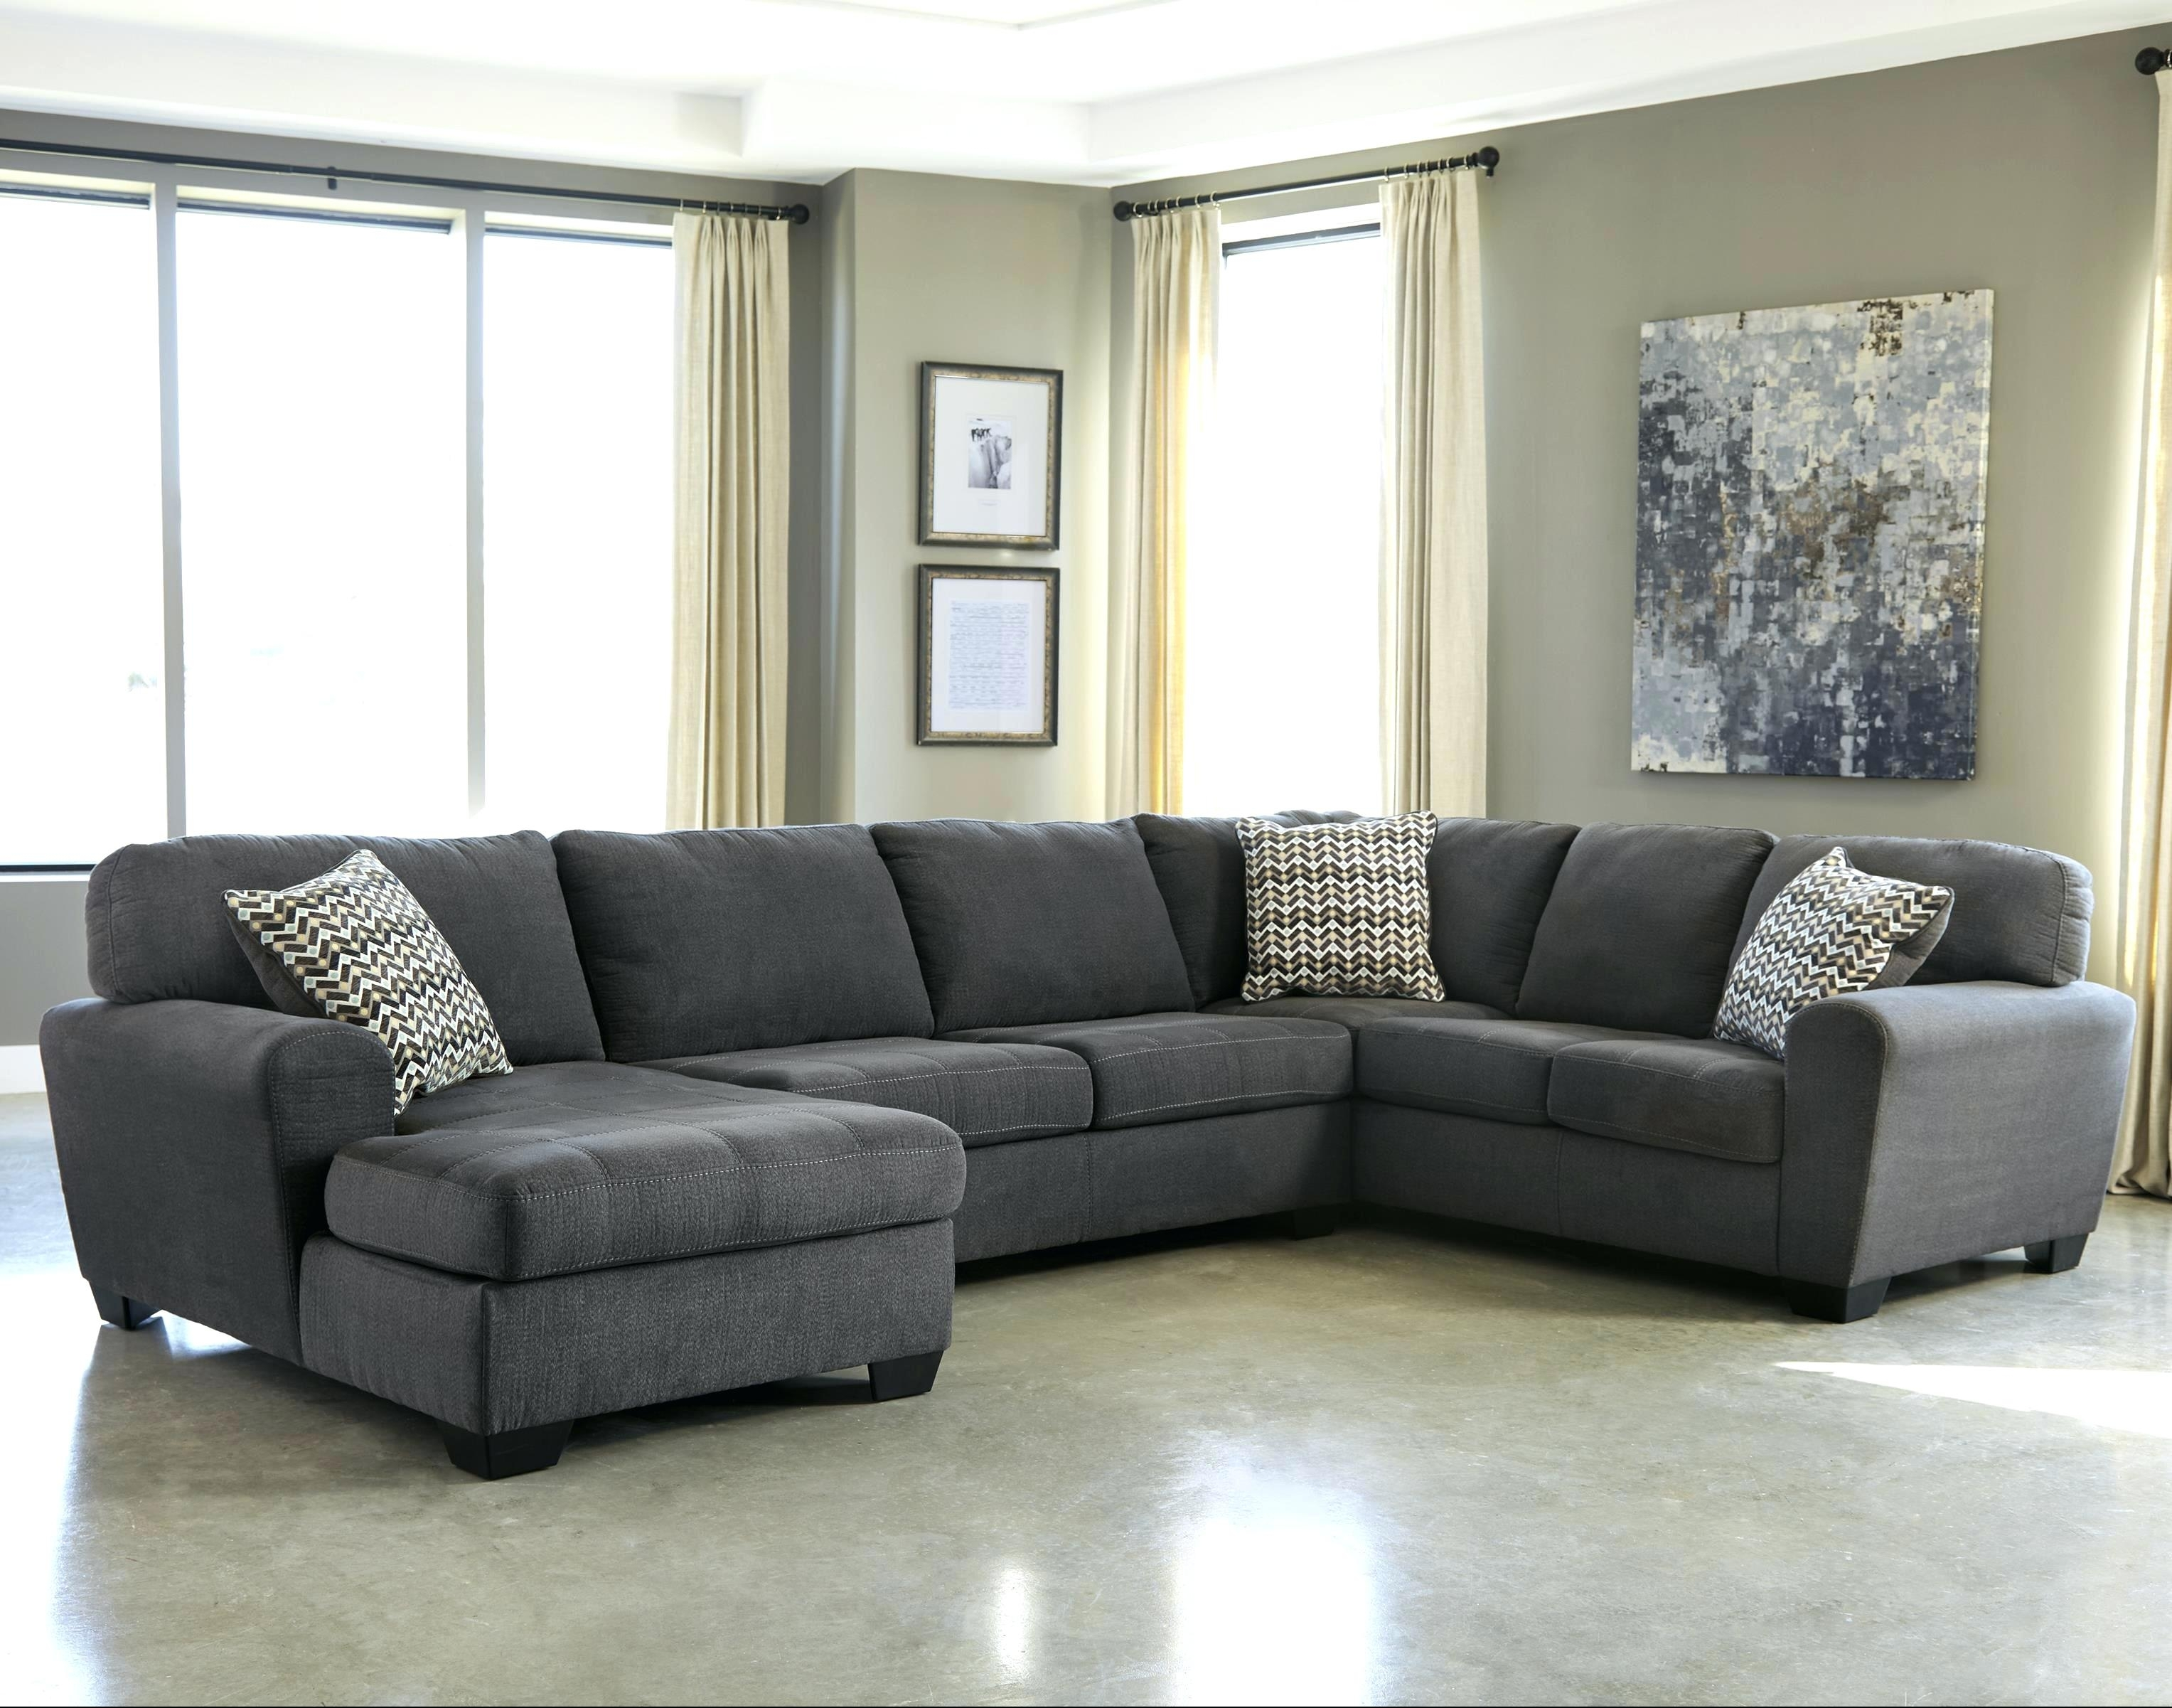 3 Piece Sectional Haven Blue Steel 3 Piece Sectional 3 Pc Reclining with Haven Blue Steel 3 Piece Sectionals